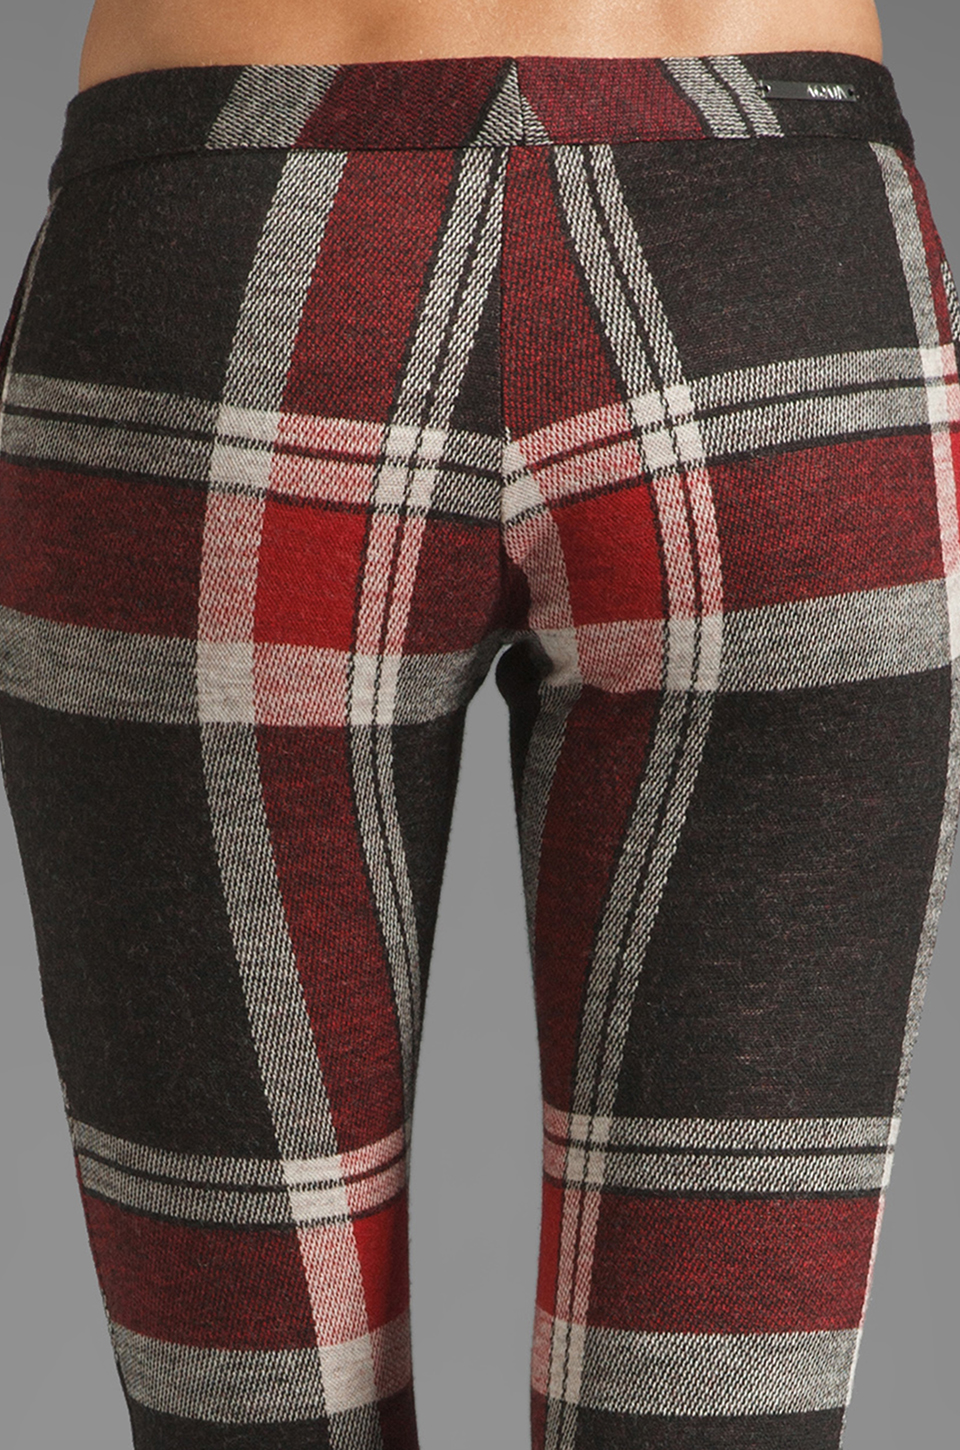 AGAIN Harding Stretch Lowrise Skinny Pant in Red Flannel